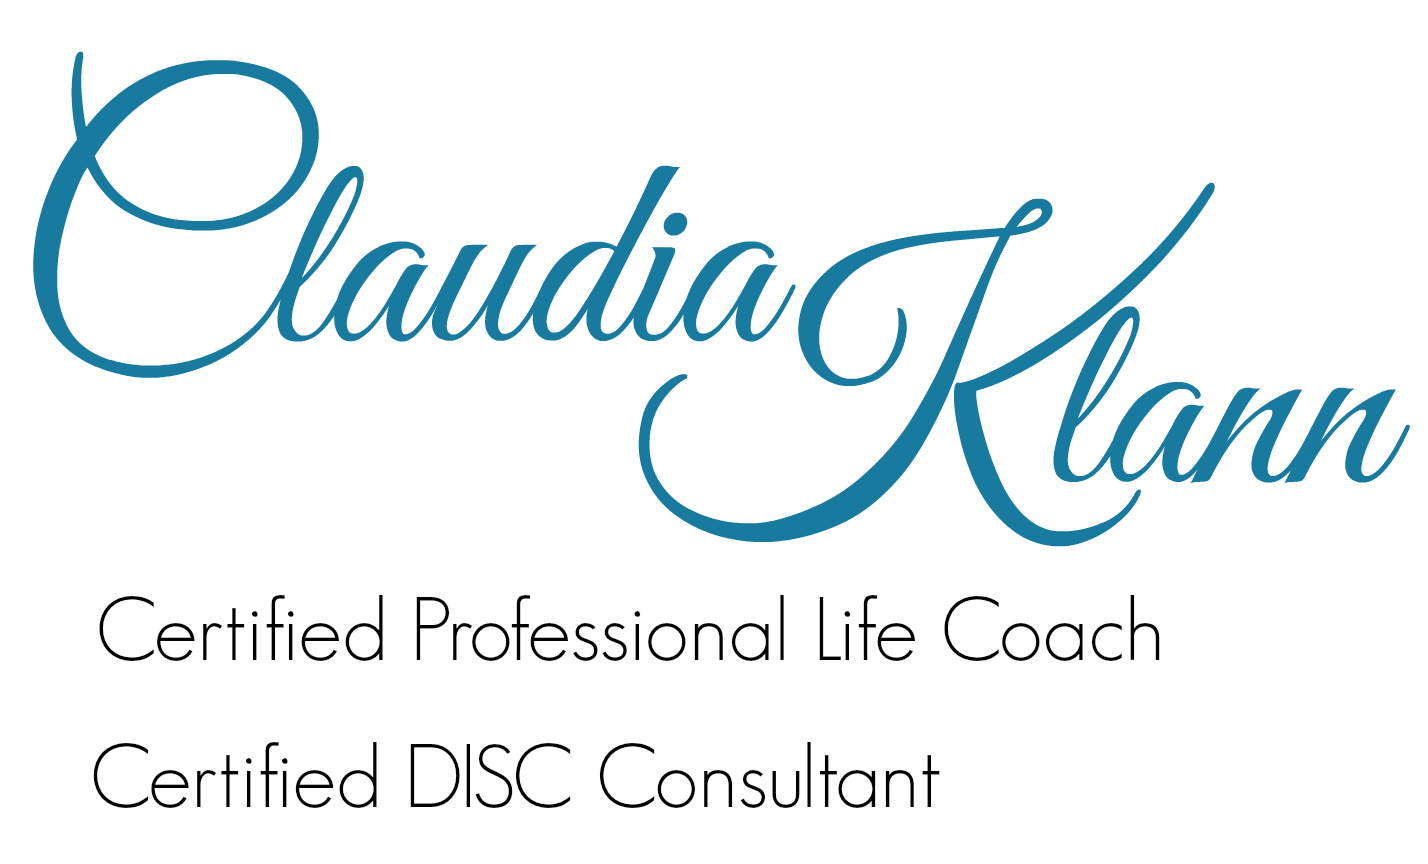 Discover Your Destiny–Claudia Klann, Christian Life Coach and Mentor